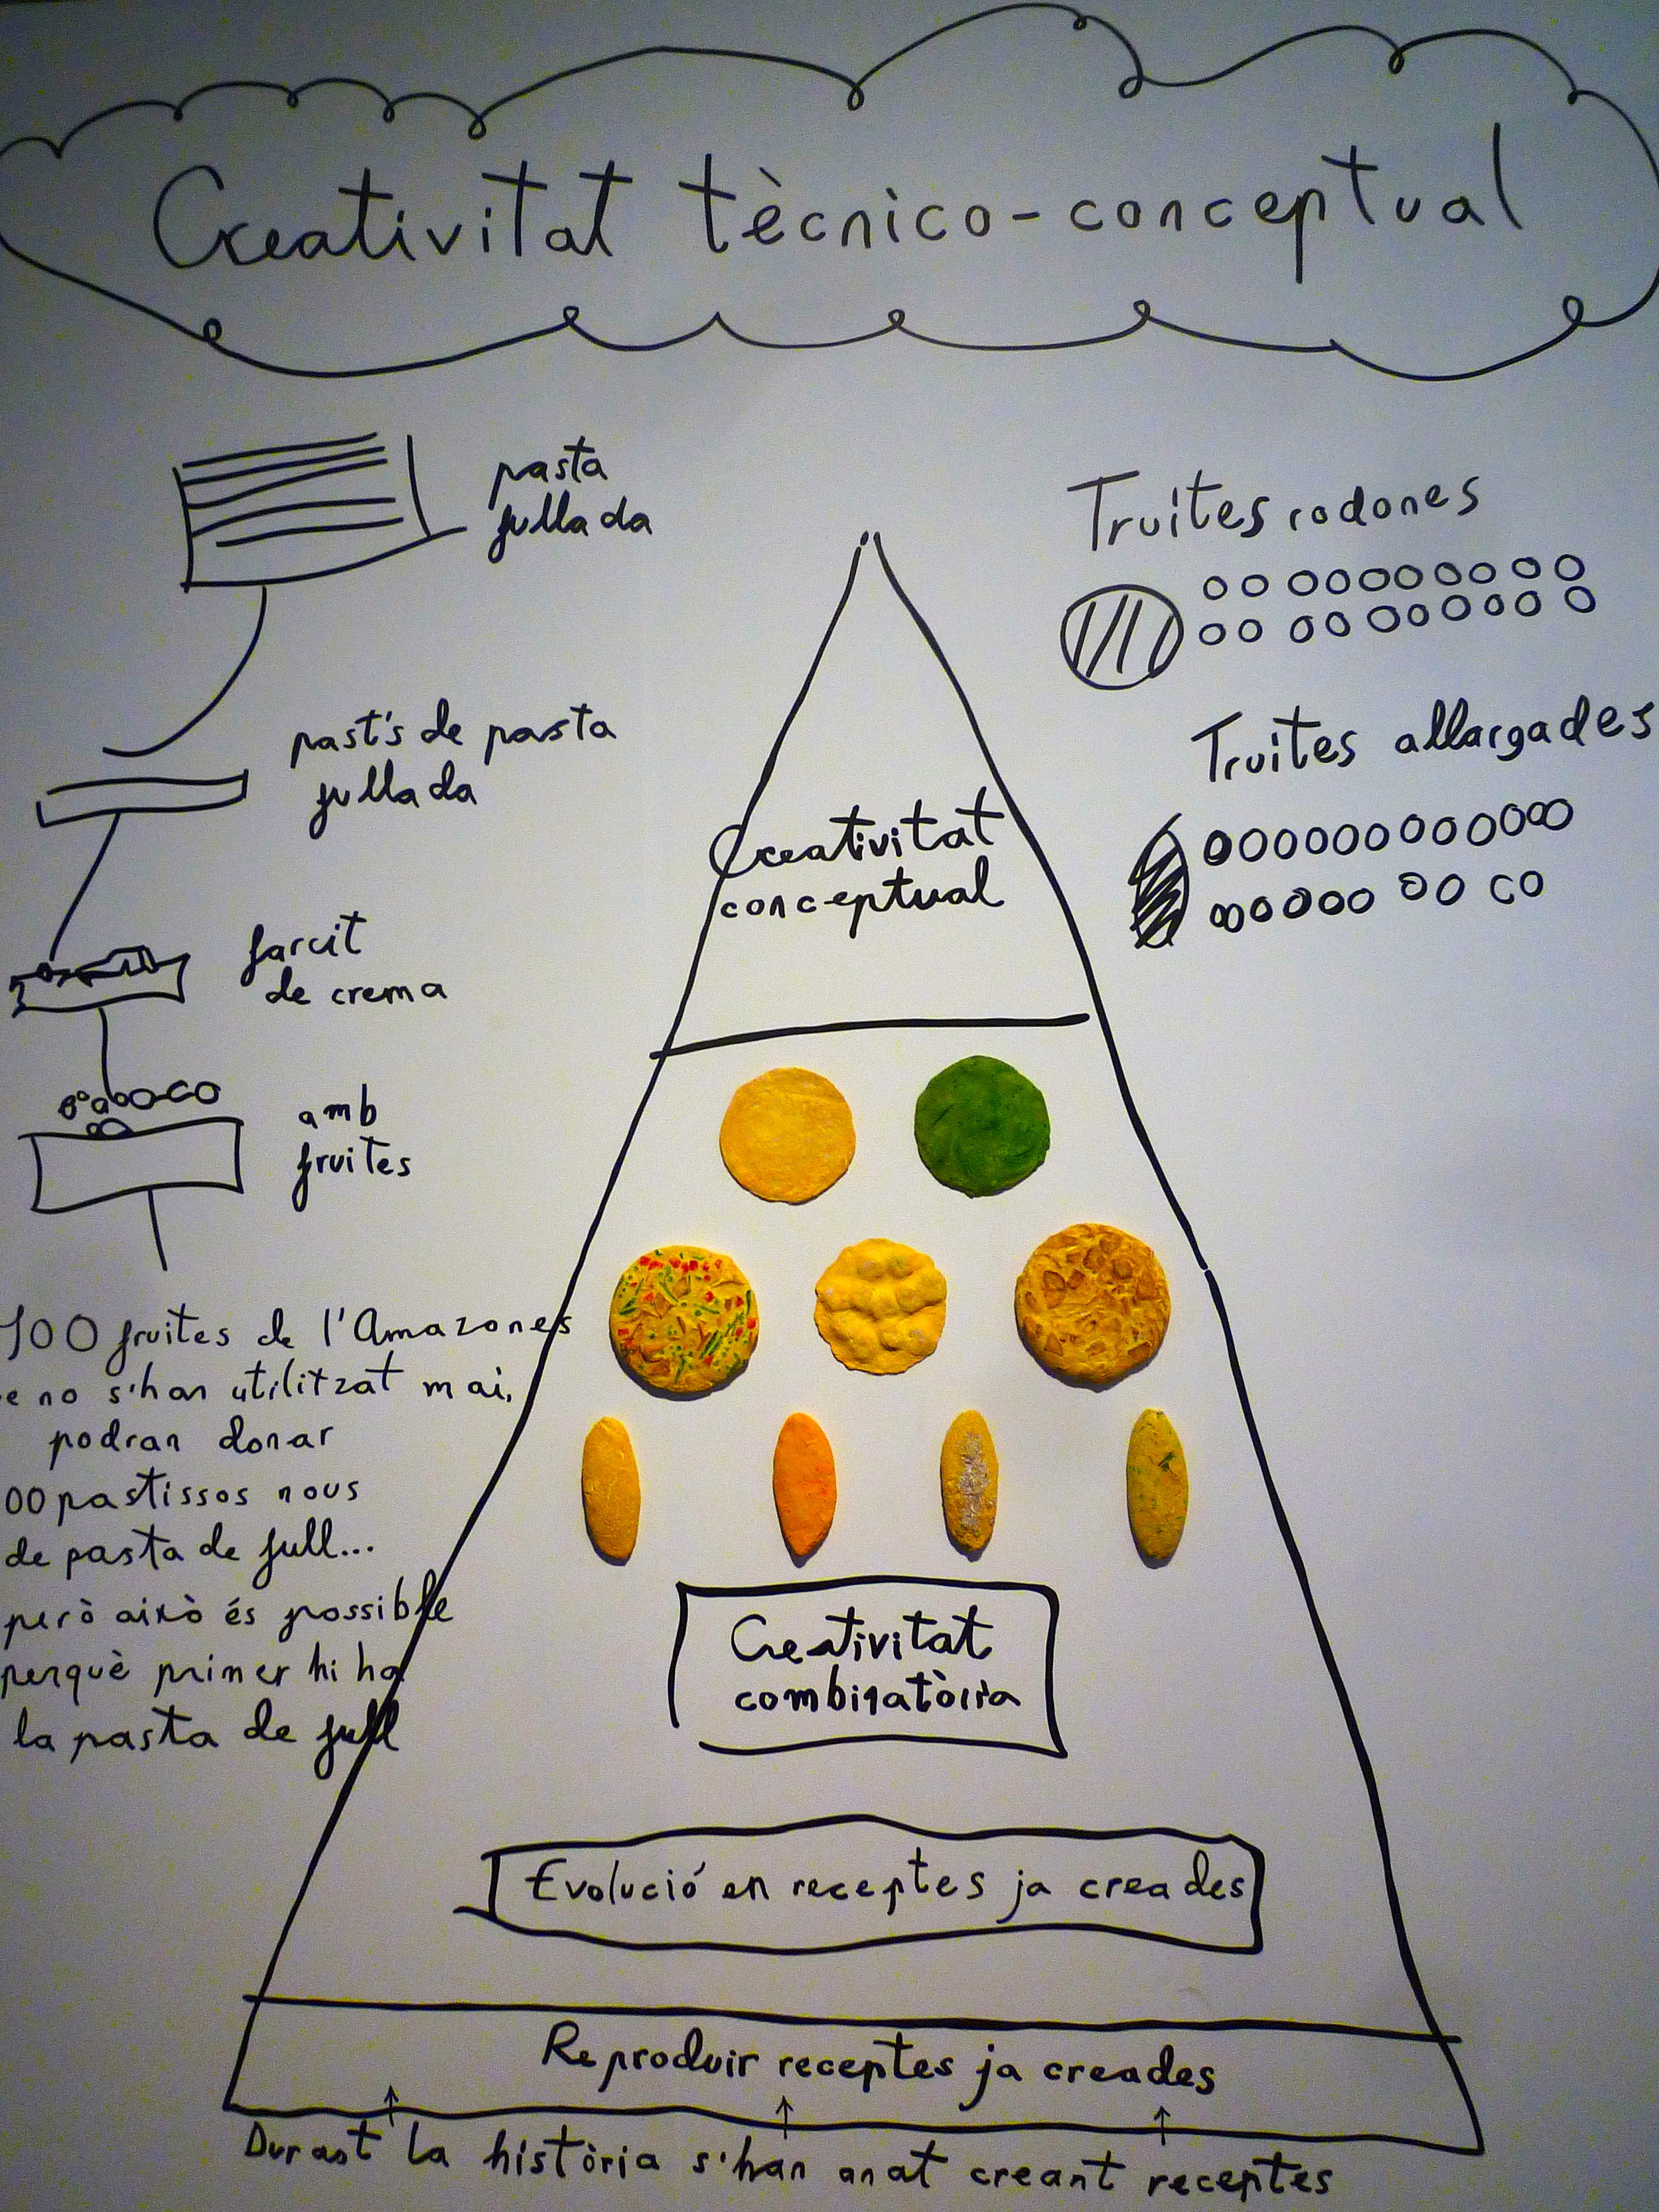 The El Bulli approach to creativity: learn techniques not recipes